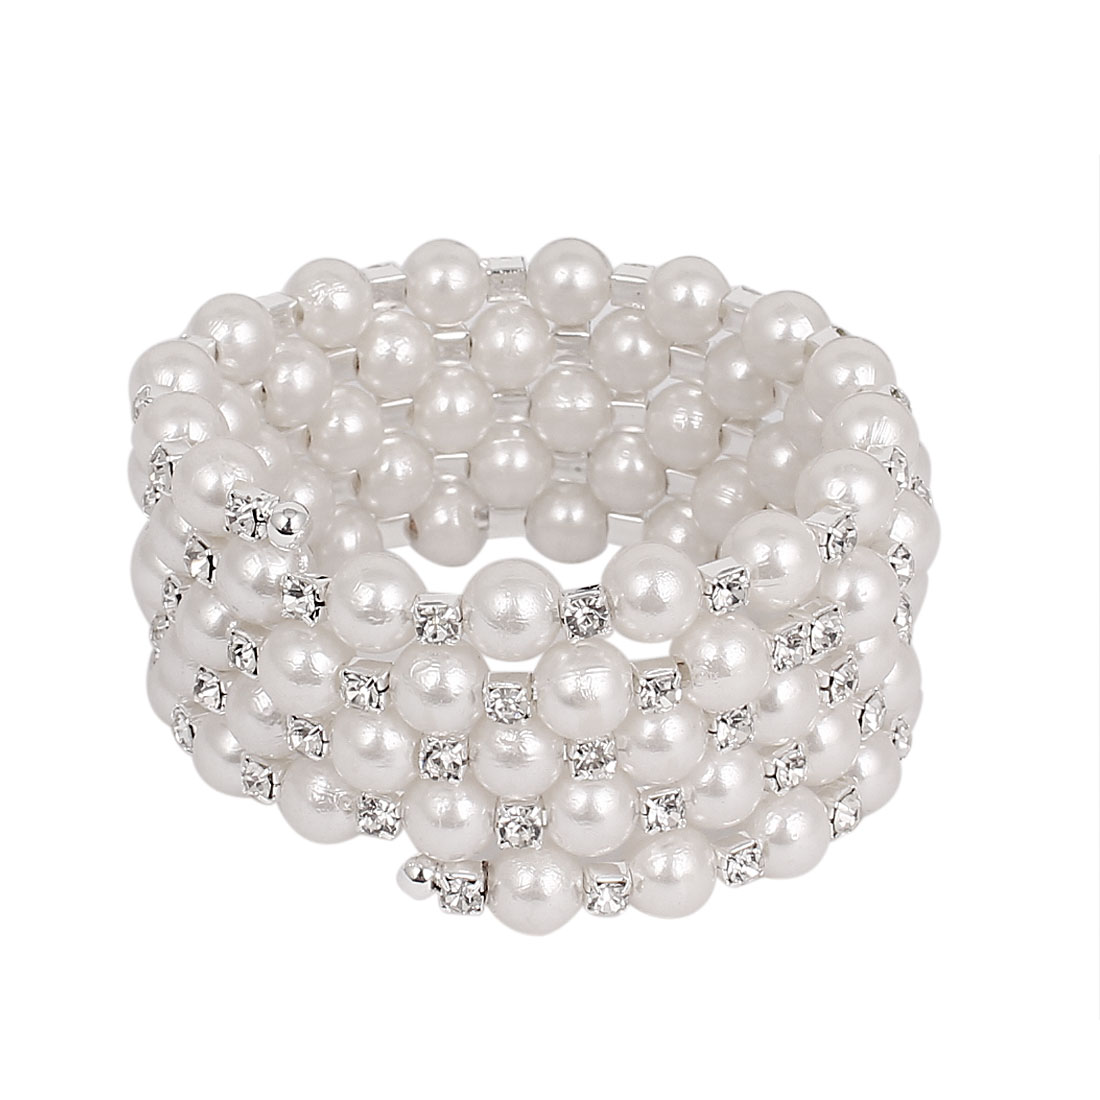 Lady Faux Rhinestone Imitation Pearl Linked 5-Layer Multi Strand Bracelet Bangle White